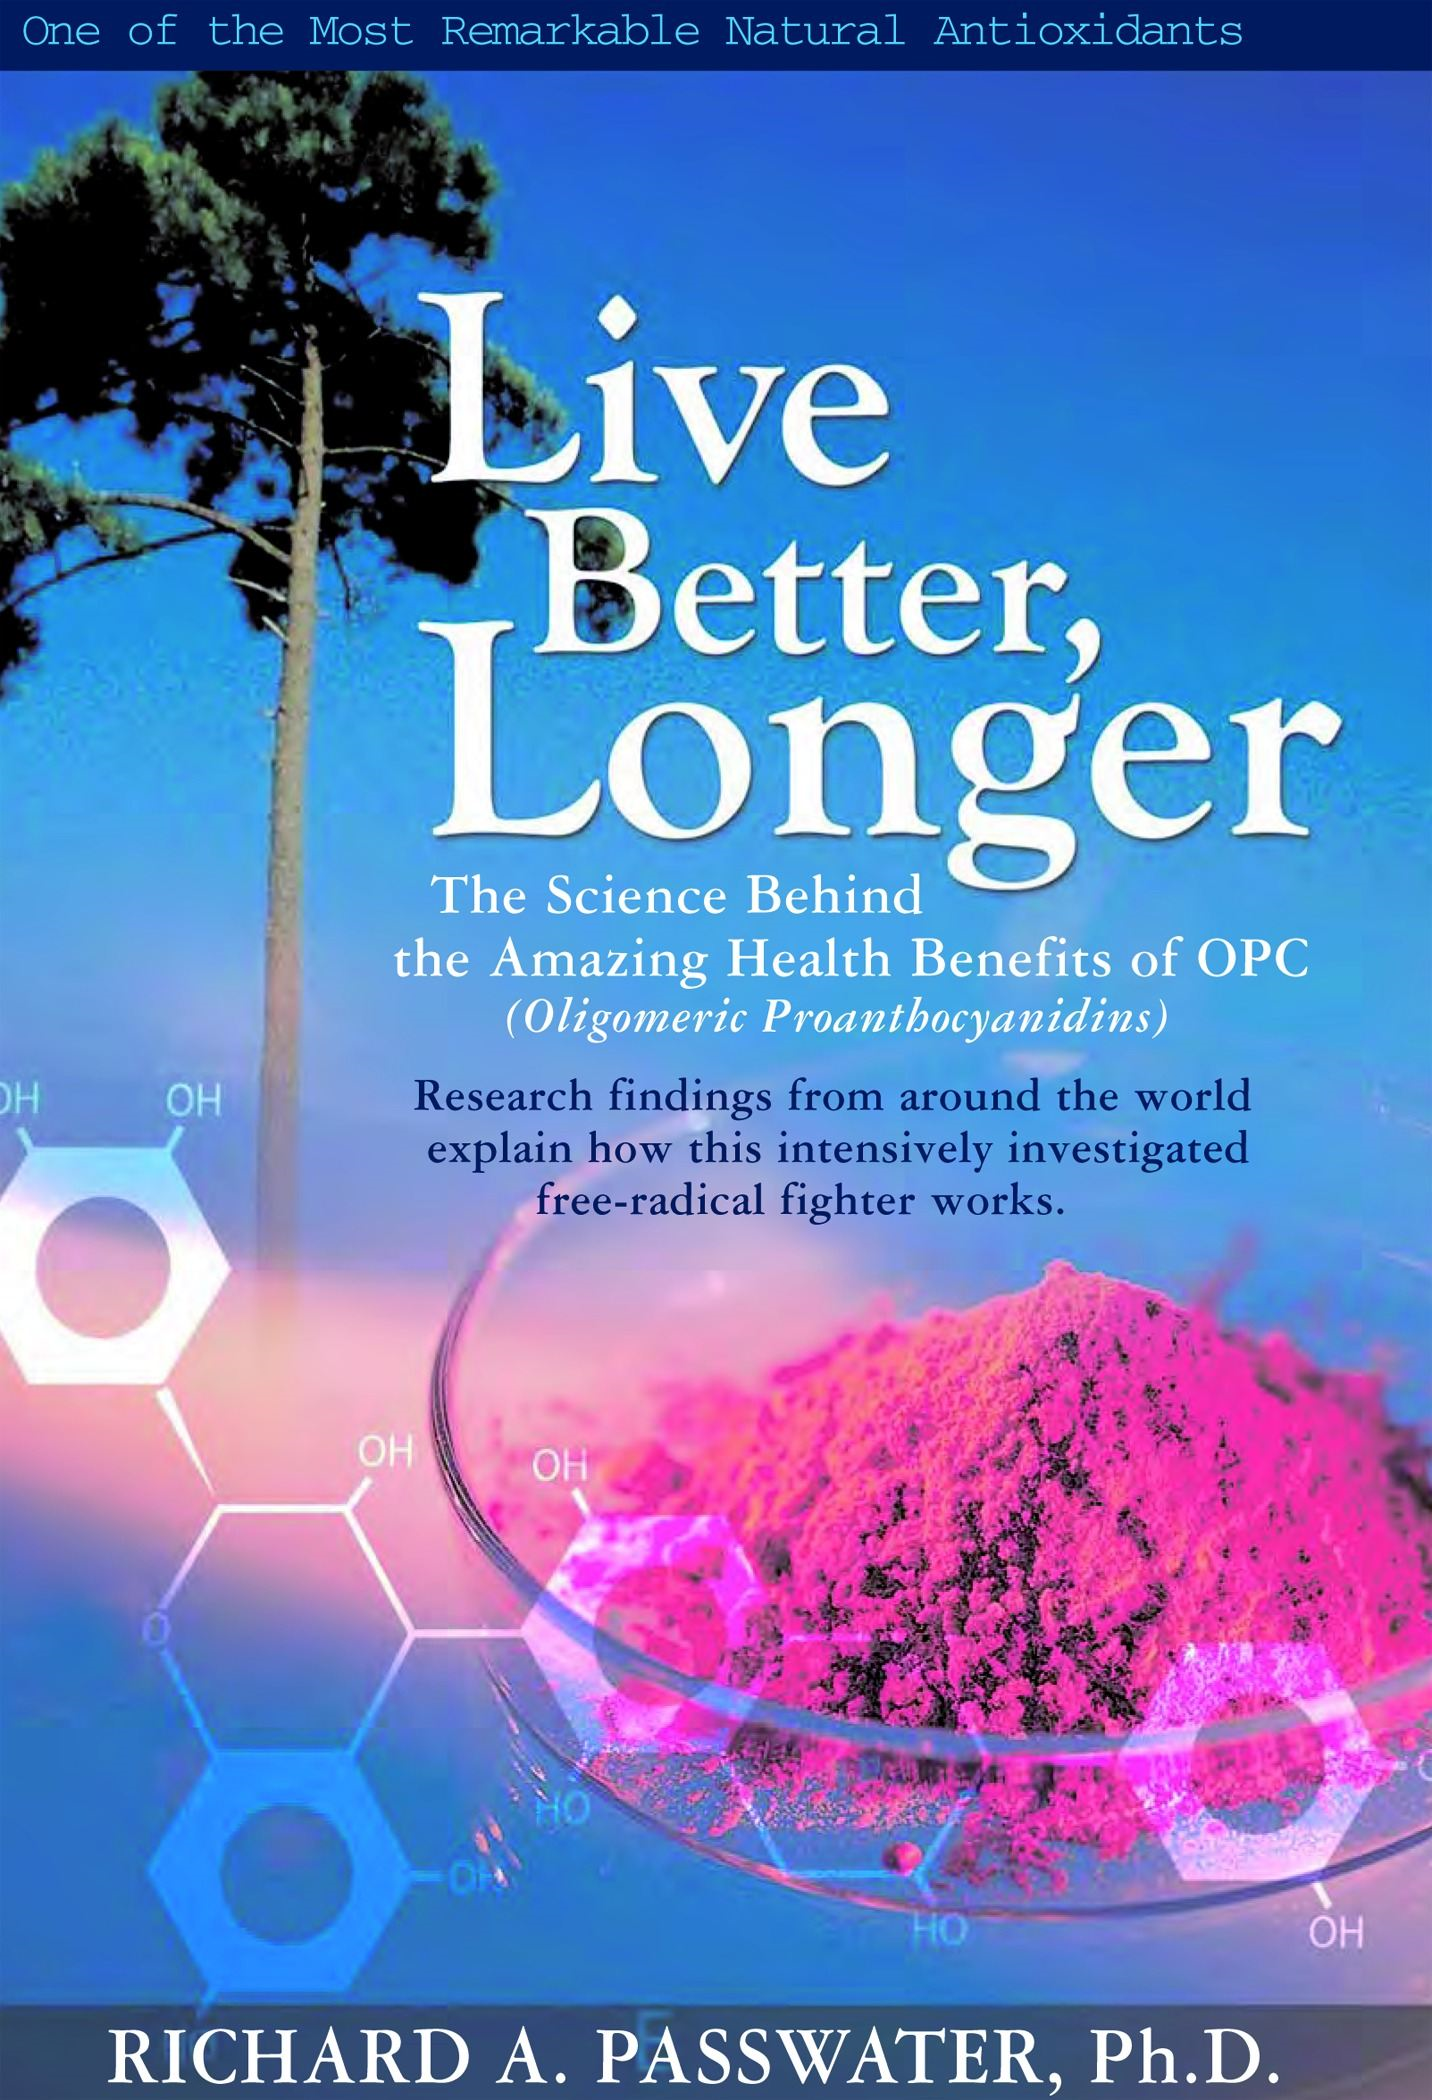 Live Better, Longer: The Science Behind the Amazing Health Benefits of OPCs By: Richard A. Passwater